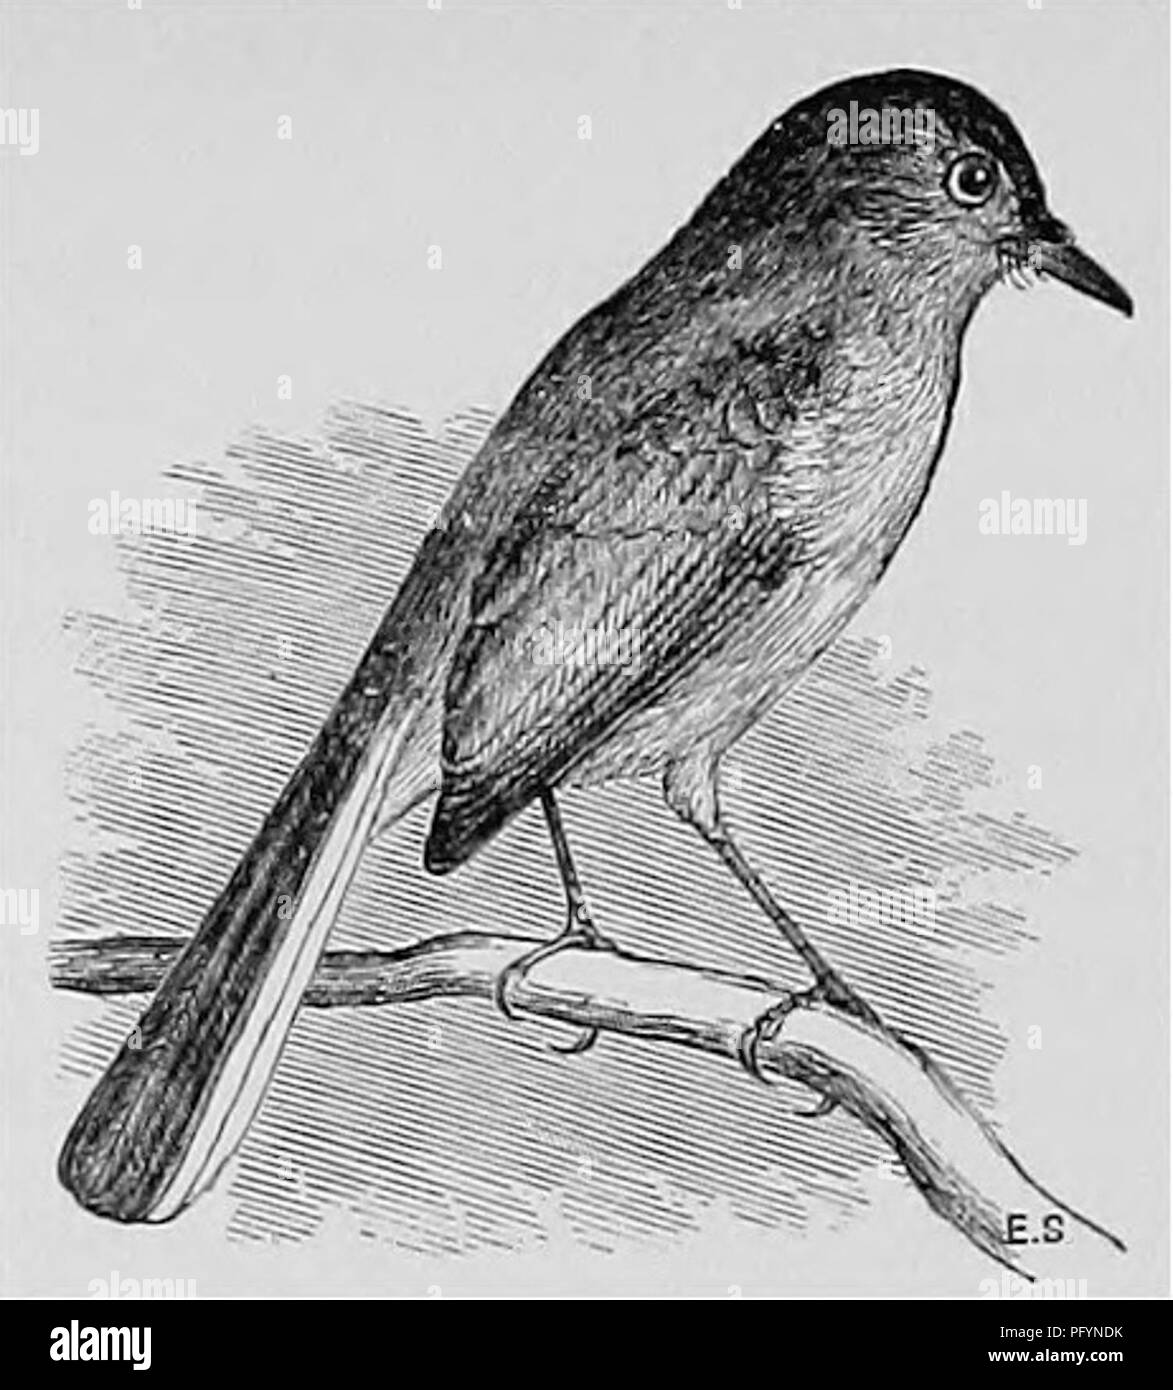 Beneath Our Feet Black And White Stock Photos Images Alamy The Iron Bar In Uquot Shape With Dimensions As Shown Diagram A Popular Handbook Of Ornithology United States Canada Based On